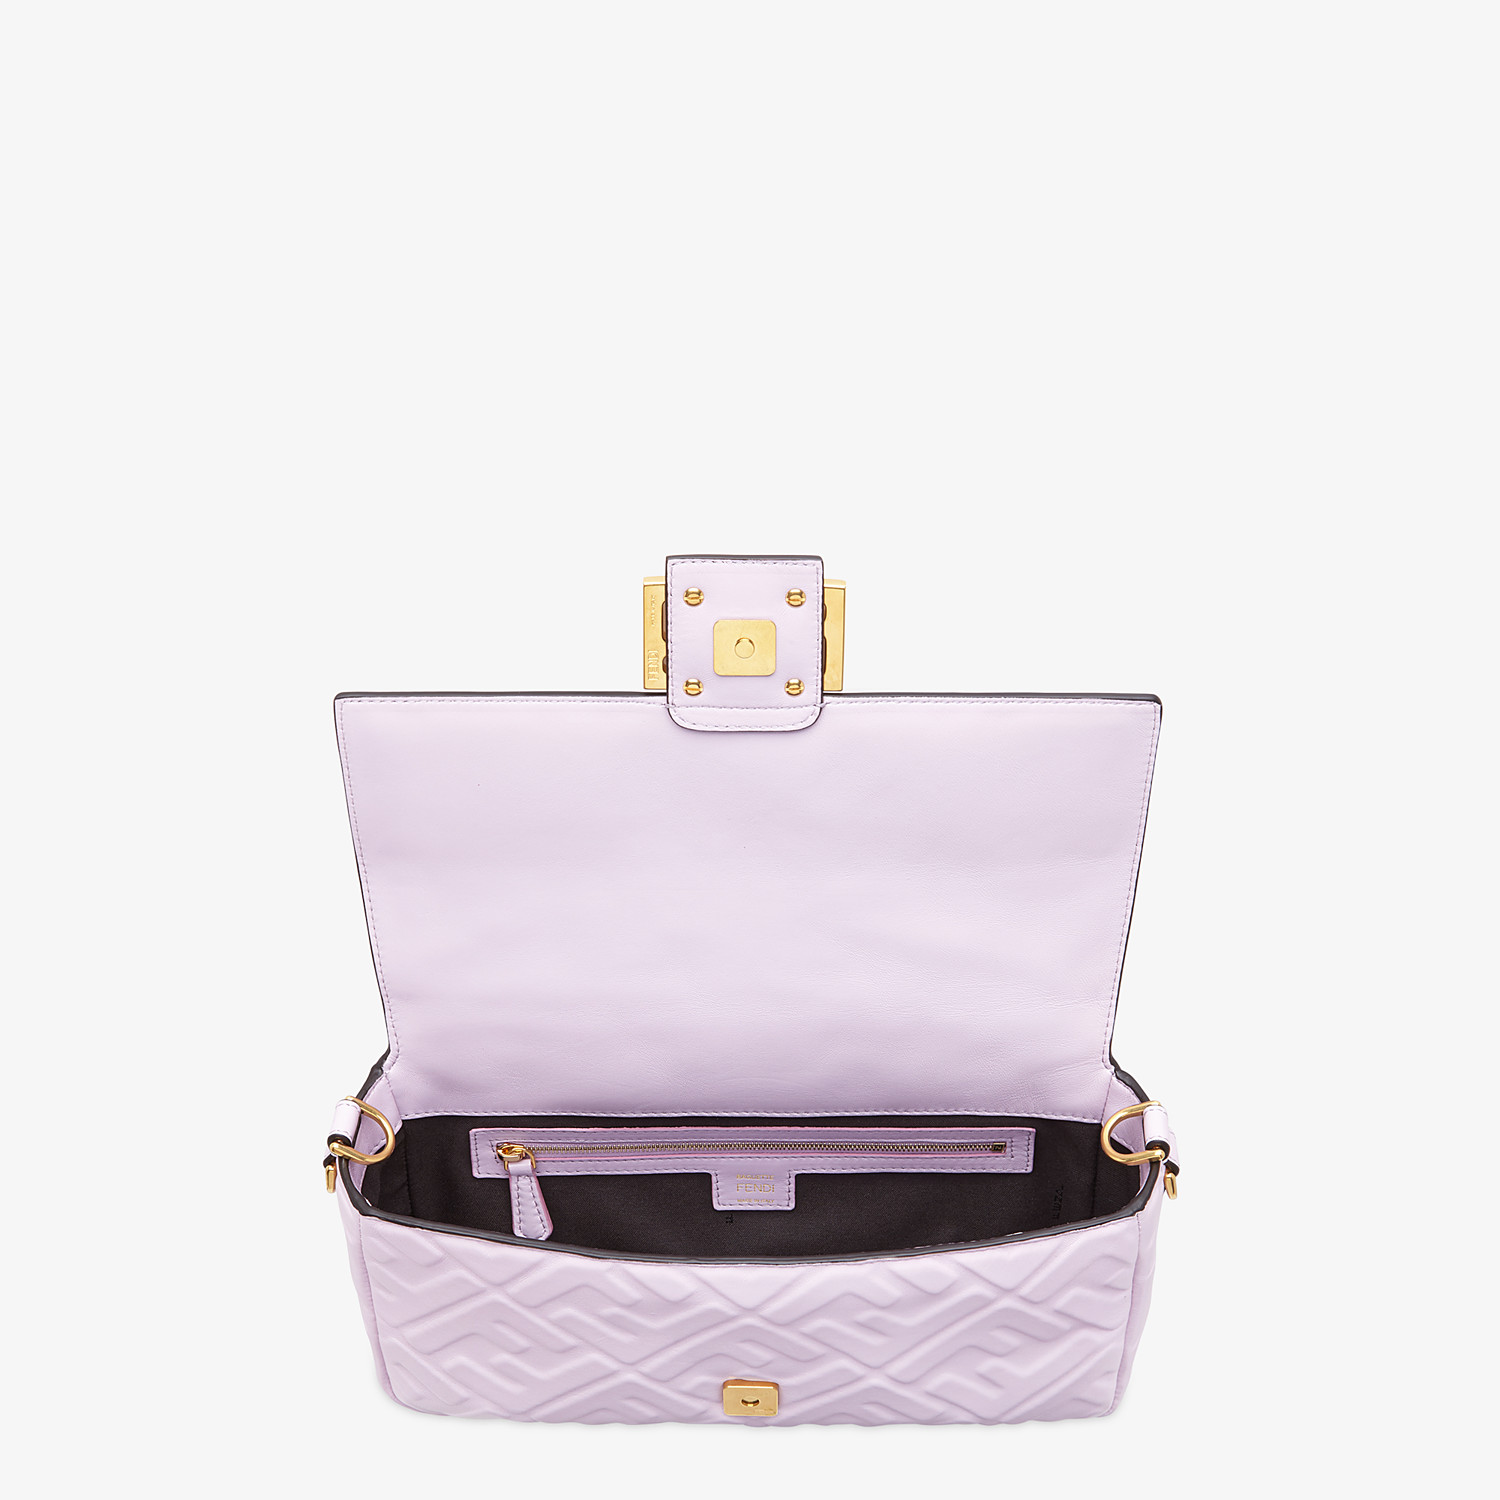 FENDI BAGUETTE - Lilac nappa leather FF Signature bag - view 5 detail